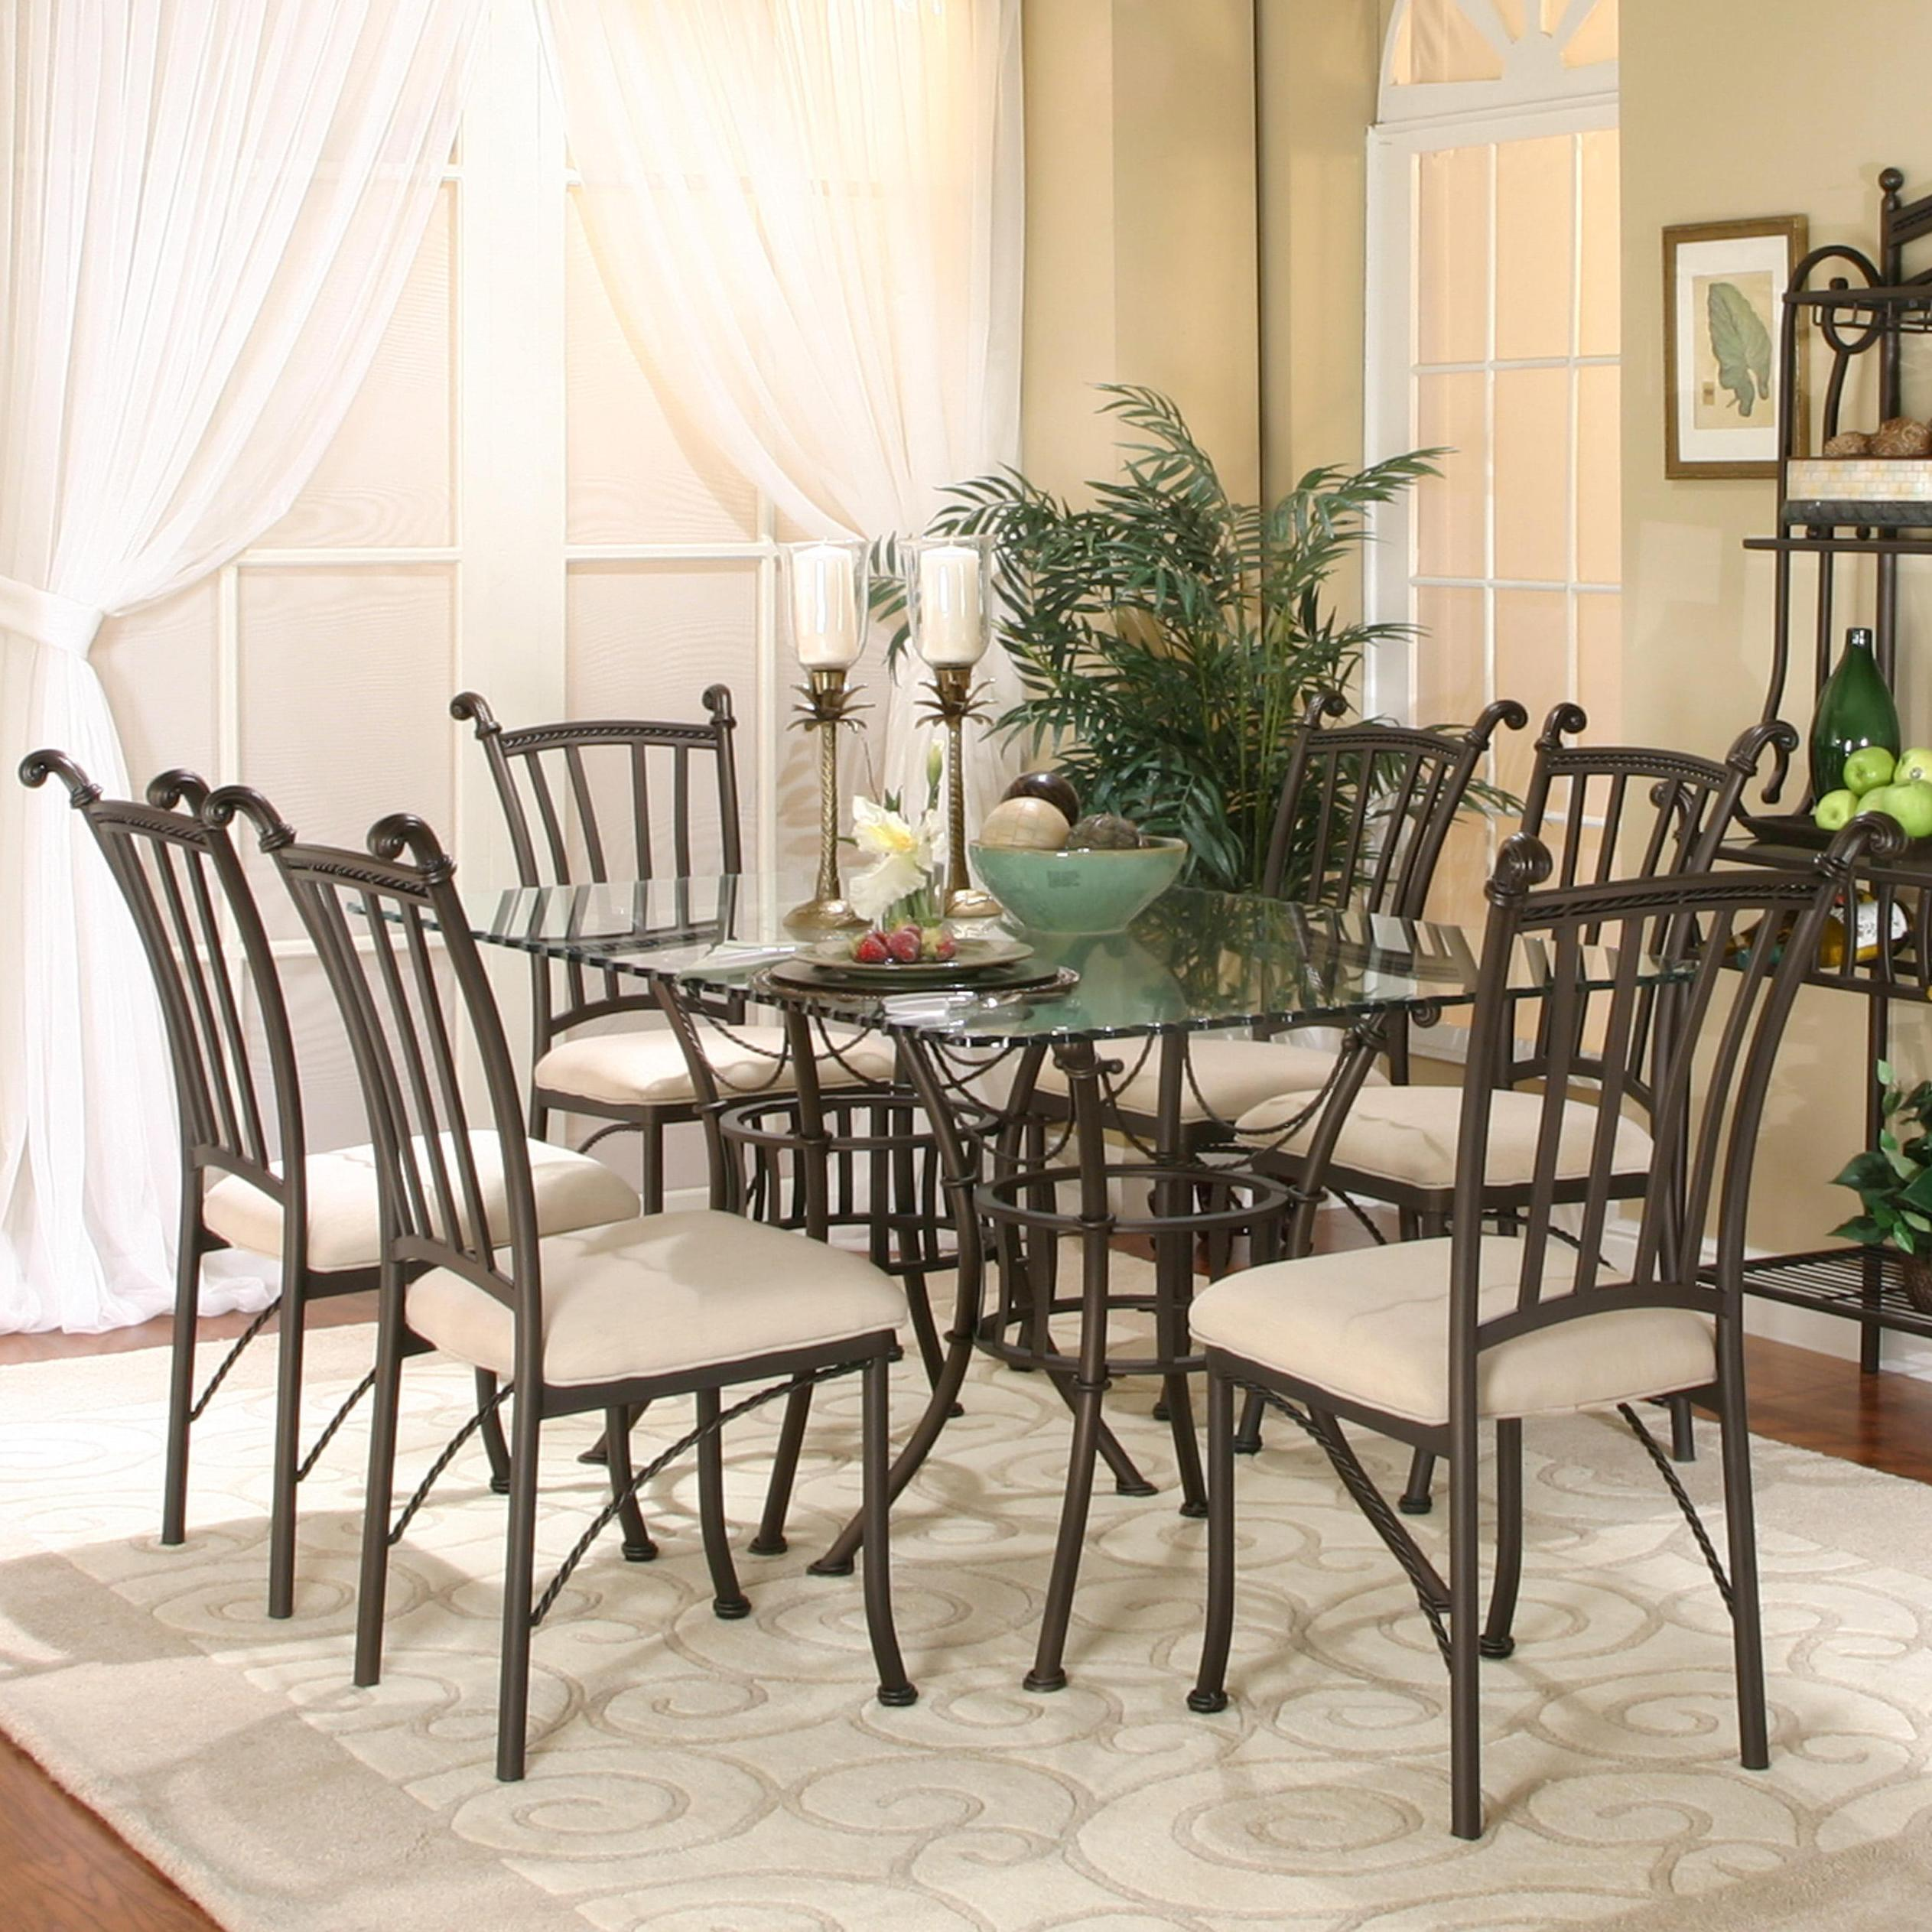 5 Piece Rectangular Glass Table With Chairs